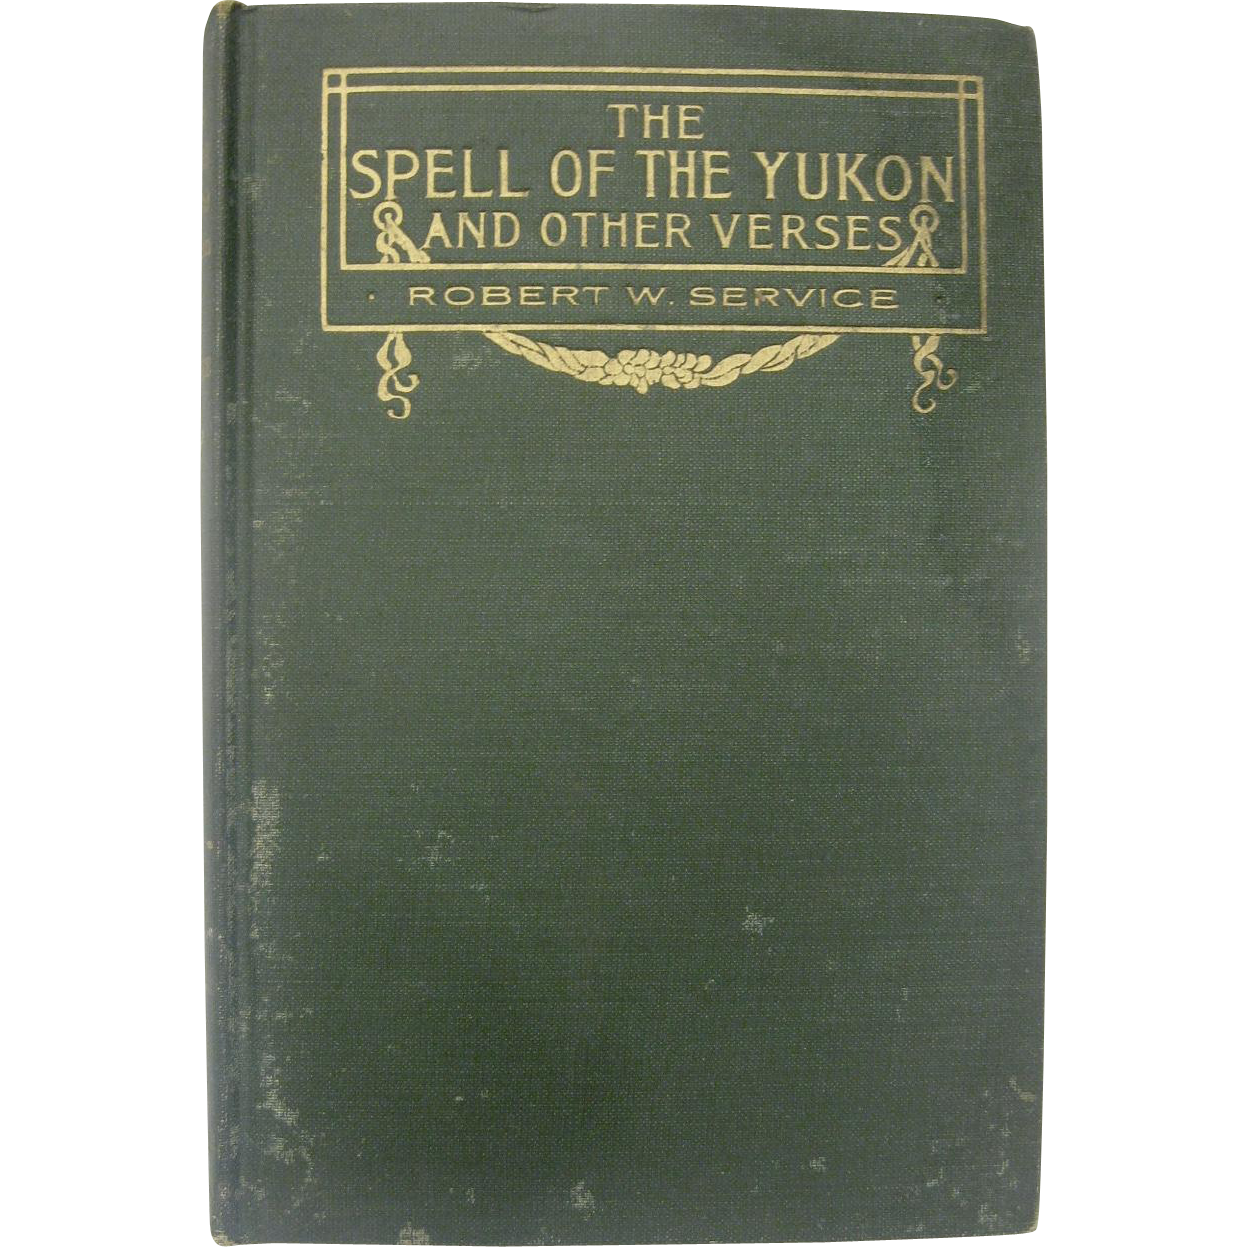 Book: The Spell of the Yukon and Other Verses Robert W Service 1907